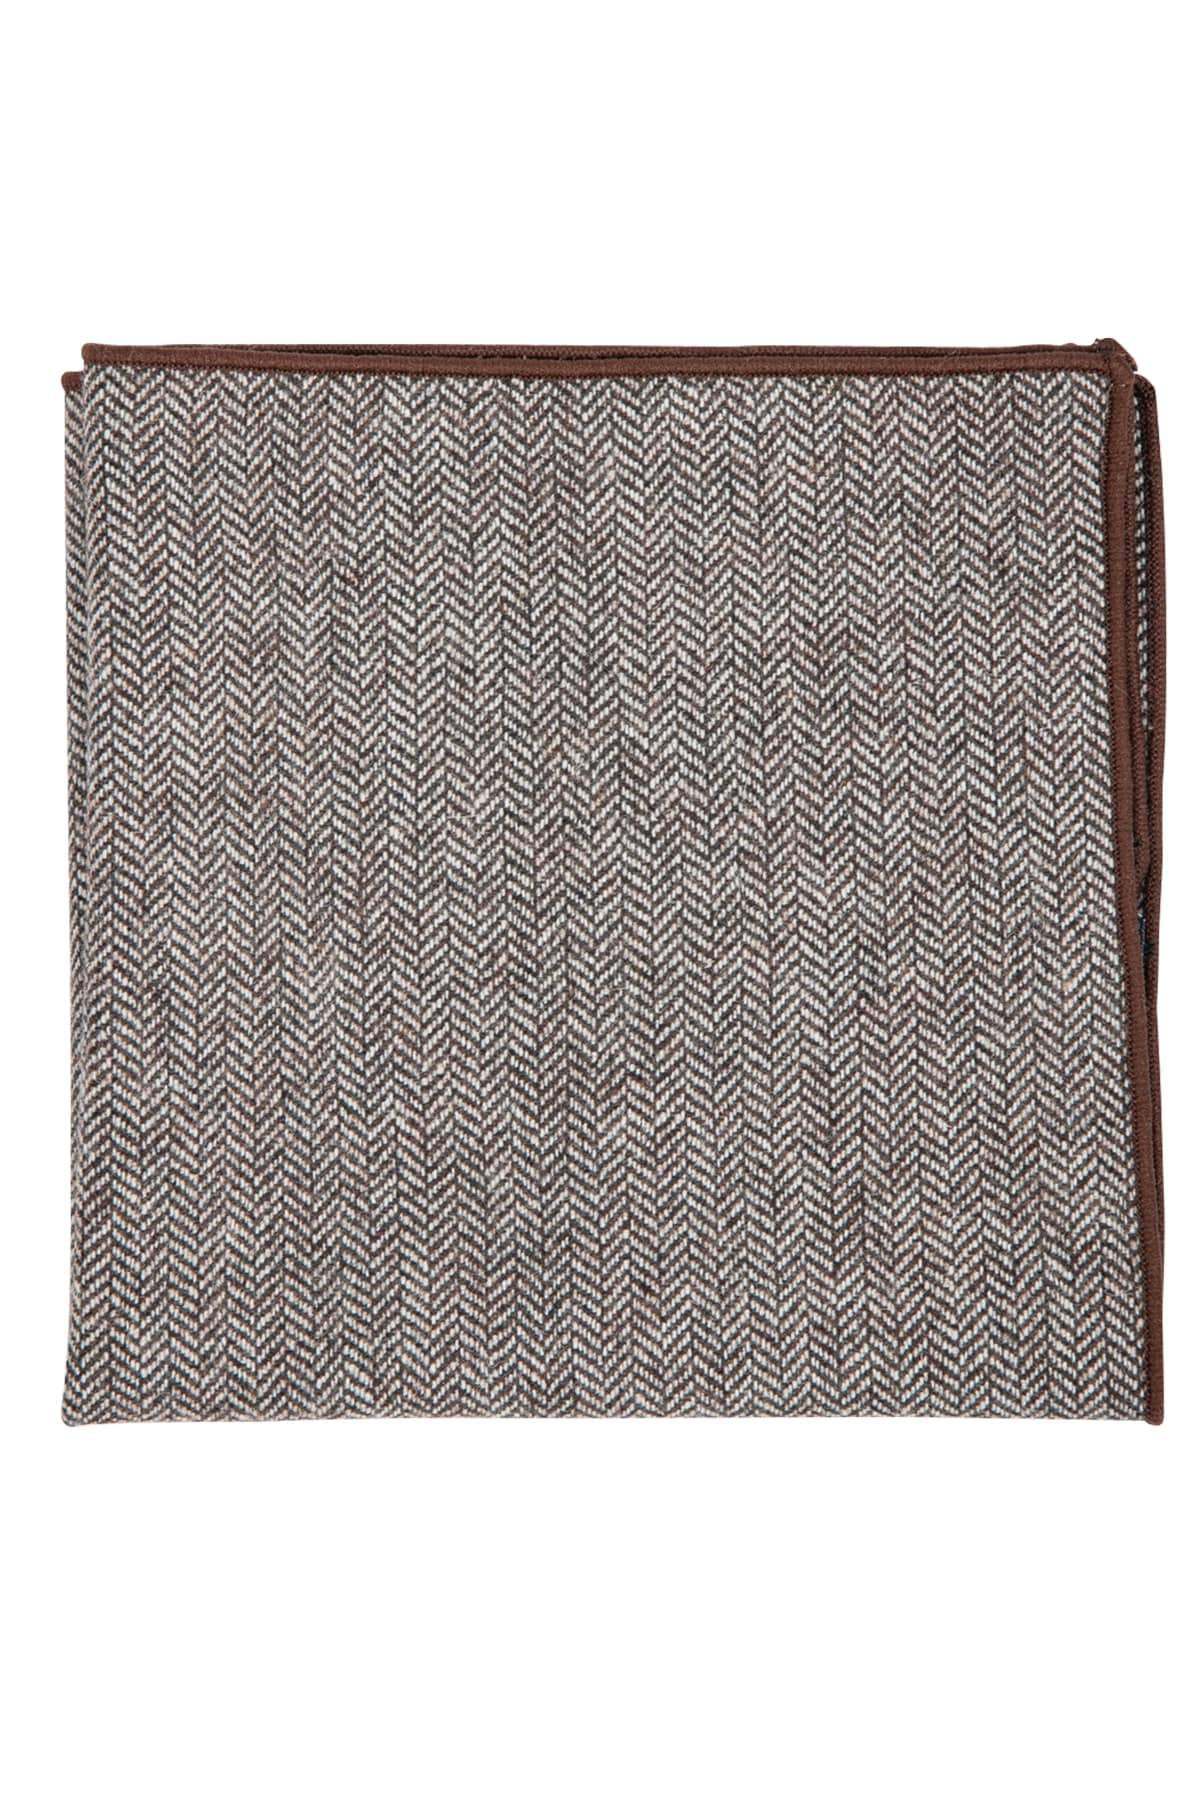 Brown Herringbone Pocket Square